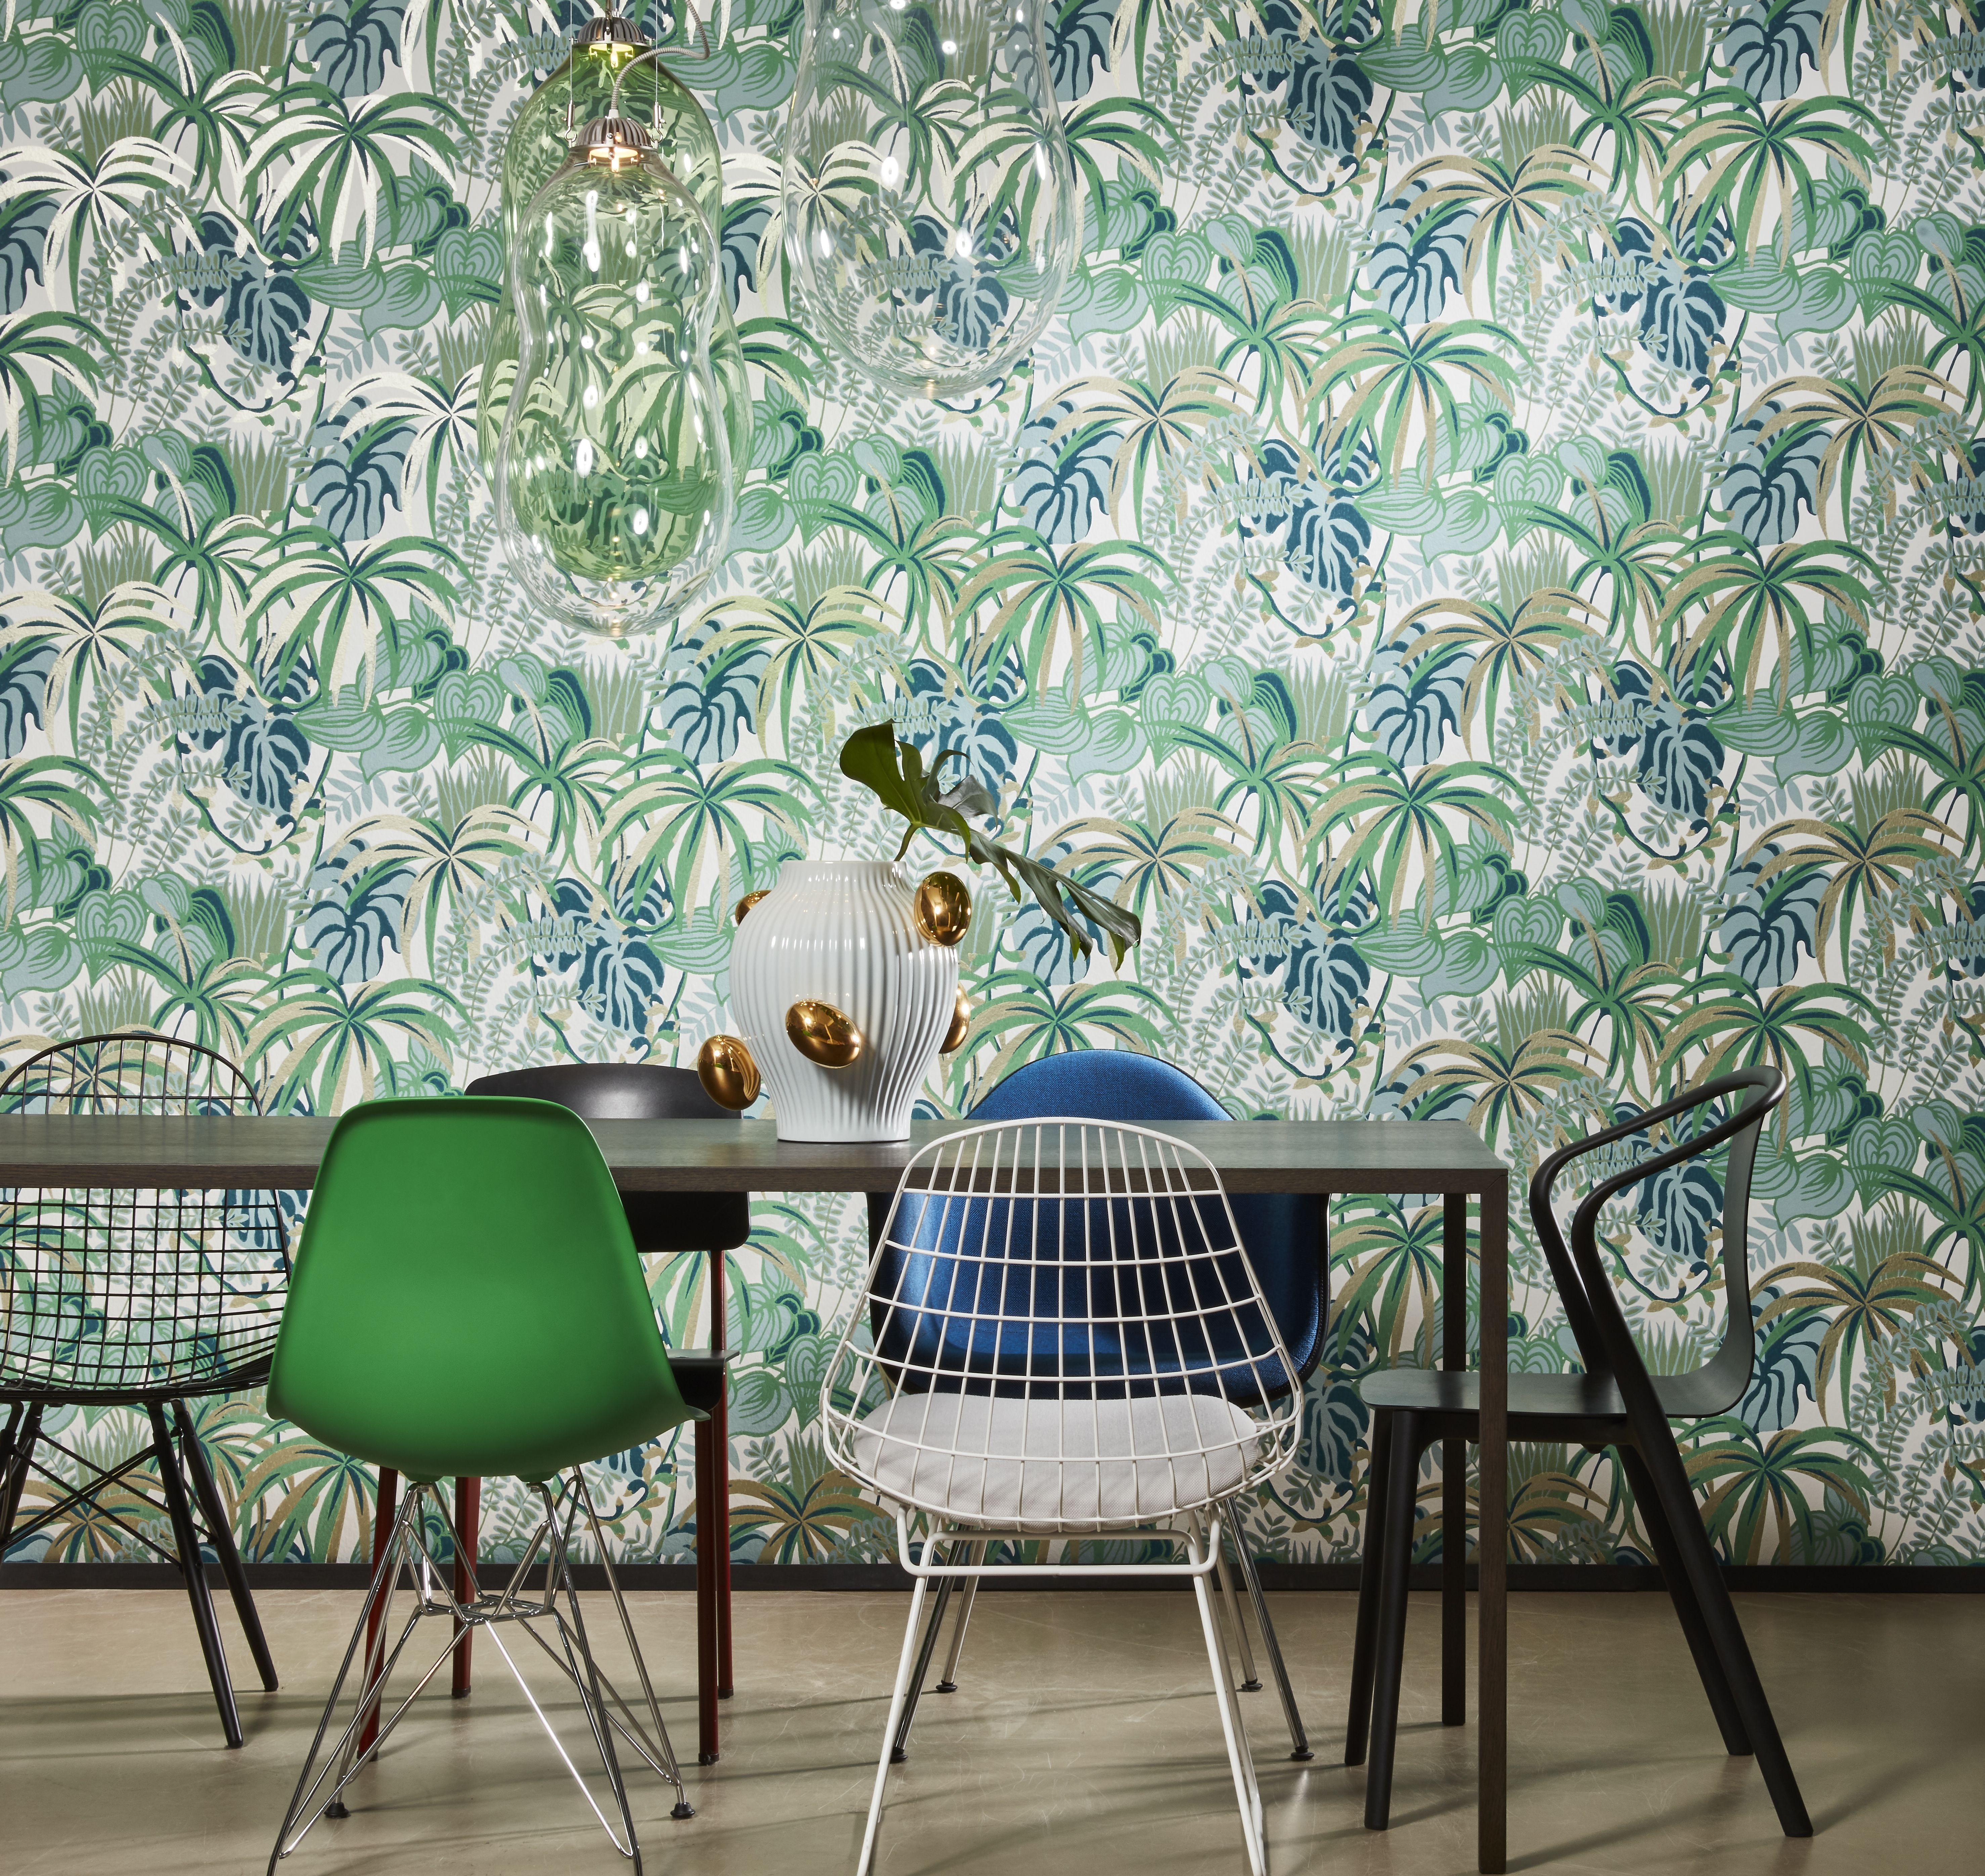 Greenery In 2020 Dining Room Wallpaper Decor Home Decor